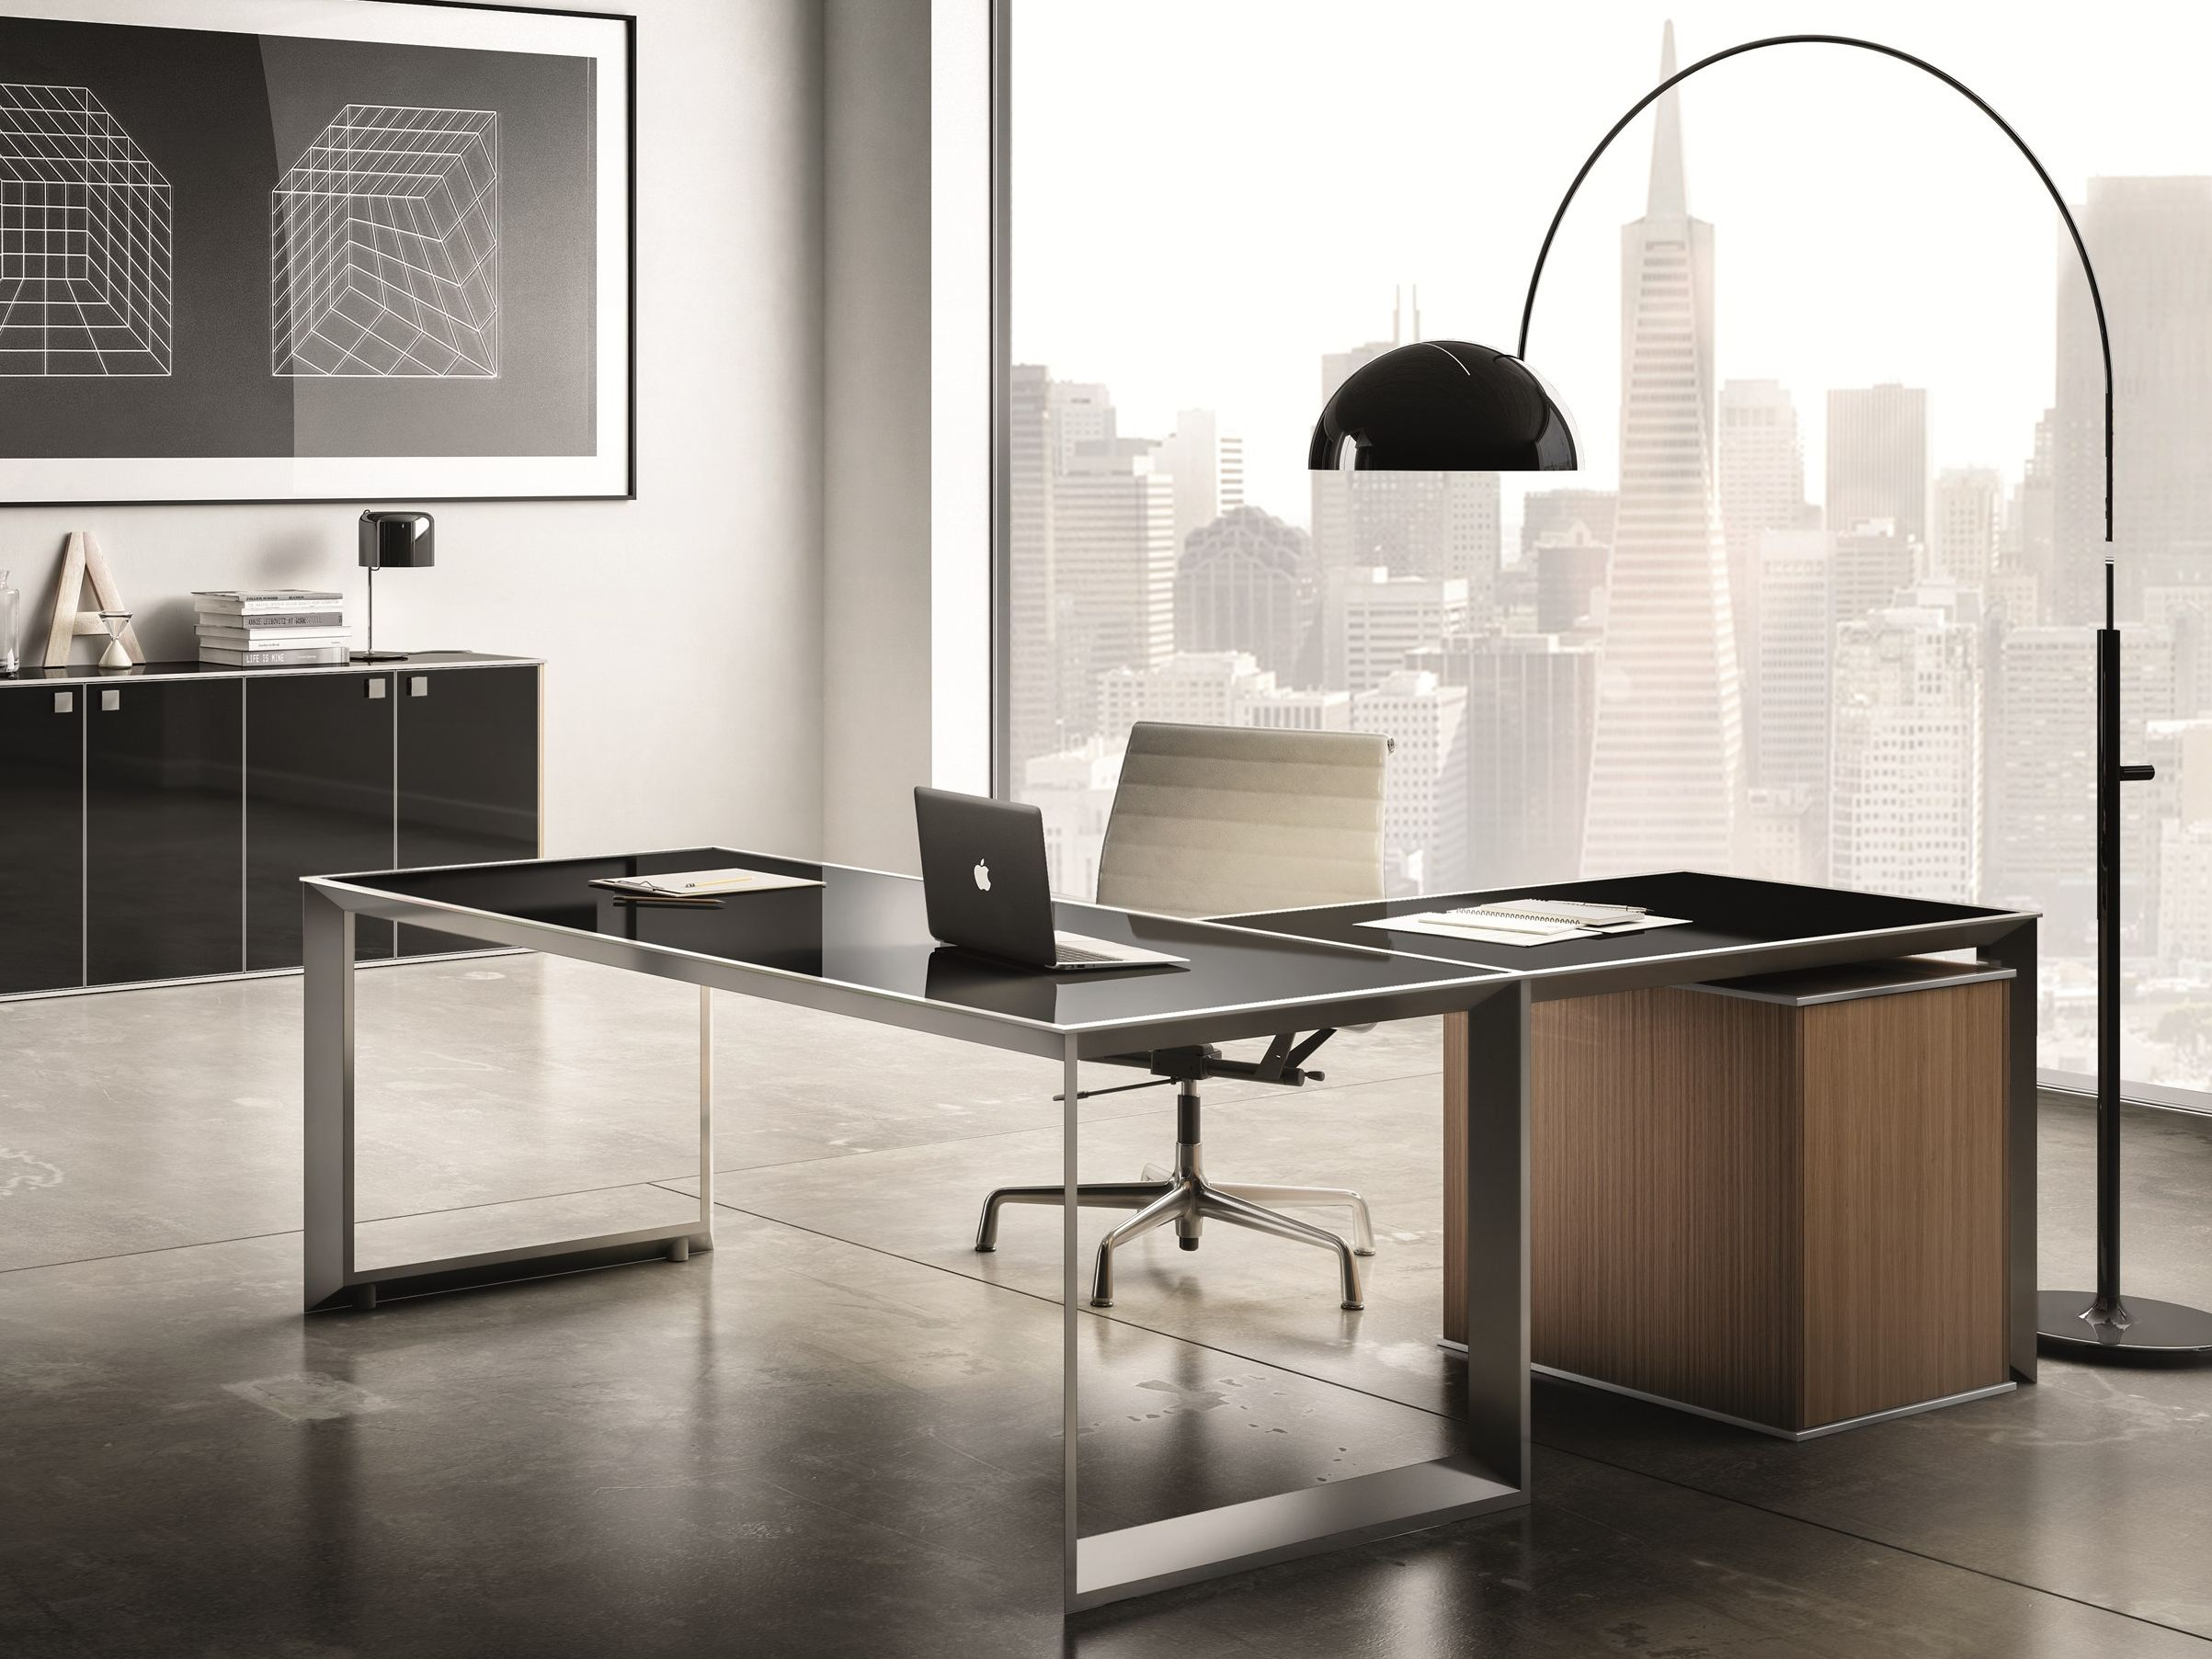 4590 Lshaped Office Desk By Ift Design Roberto Garbugli. Desk For Students. Hide Away Computer Desk. Dual Monitor Arms Desk Mount. Keyboard Holder For Desk. Gaming Tables. White Platform Bed With Drawers. Outdoor Folding Table. Folding Buffet Table